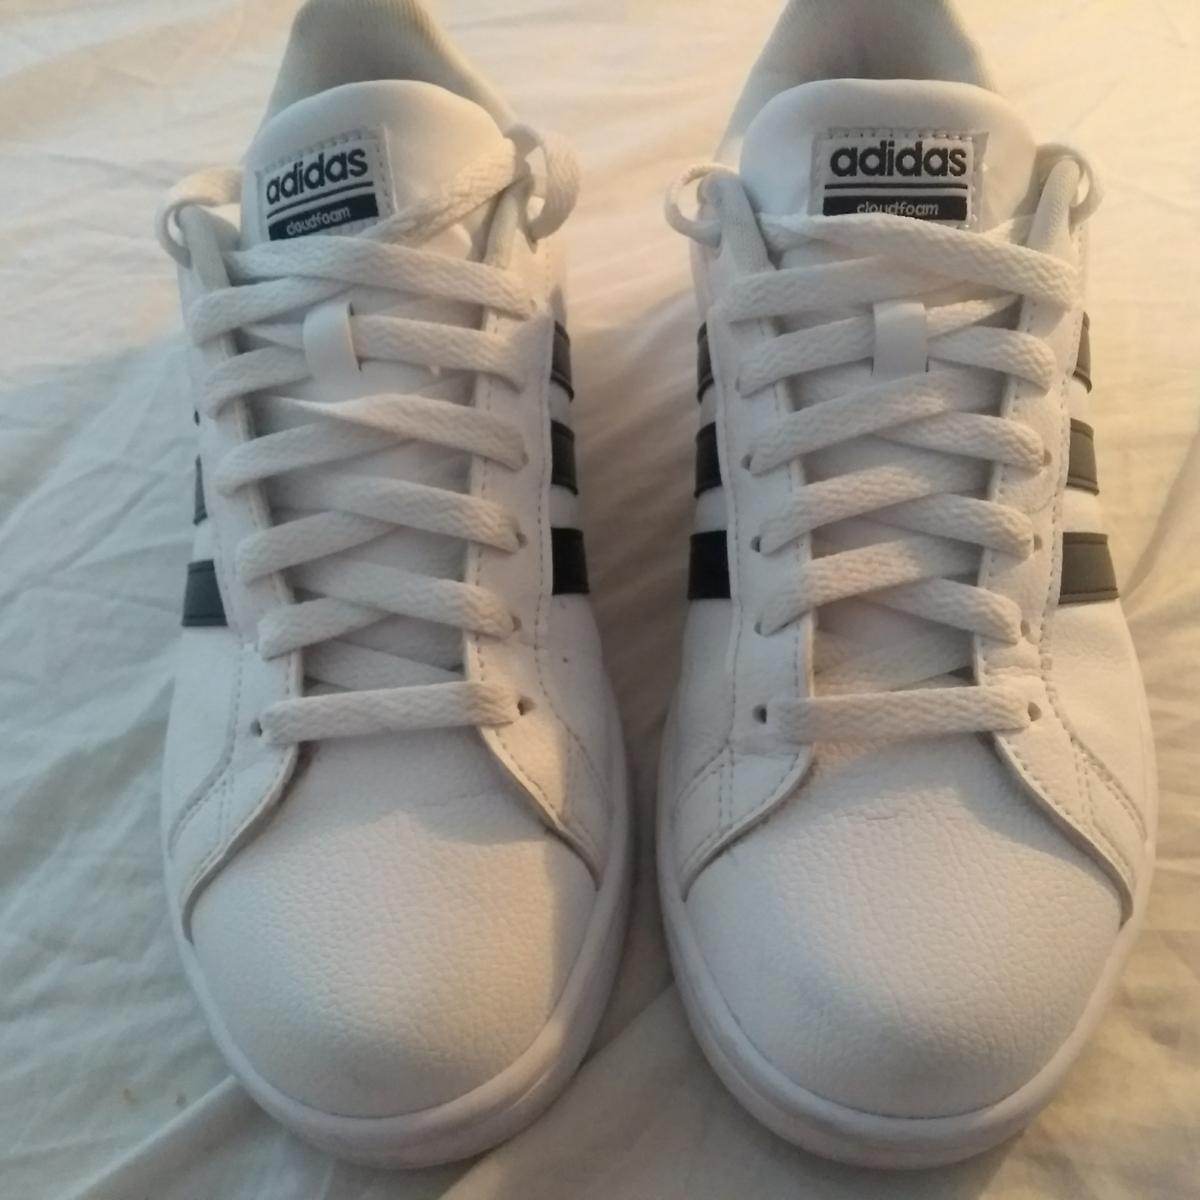 Details about Adidas Neo Comfort Footbed Grey White Pink Tennis Shoes Size 8